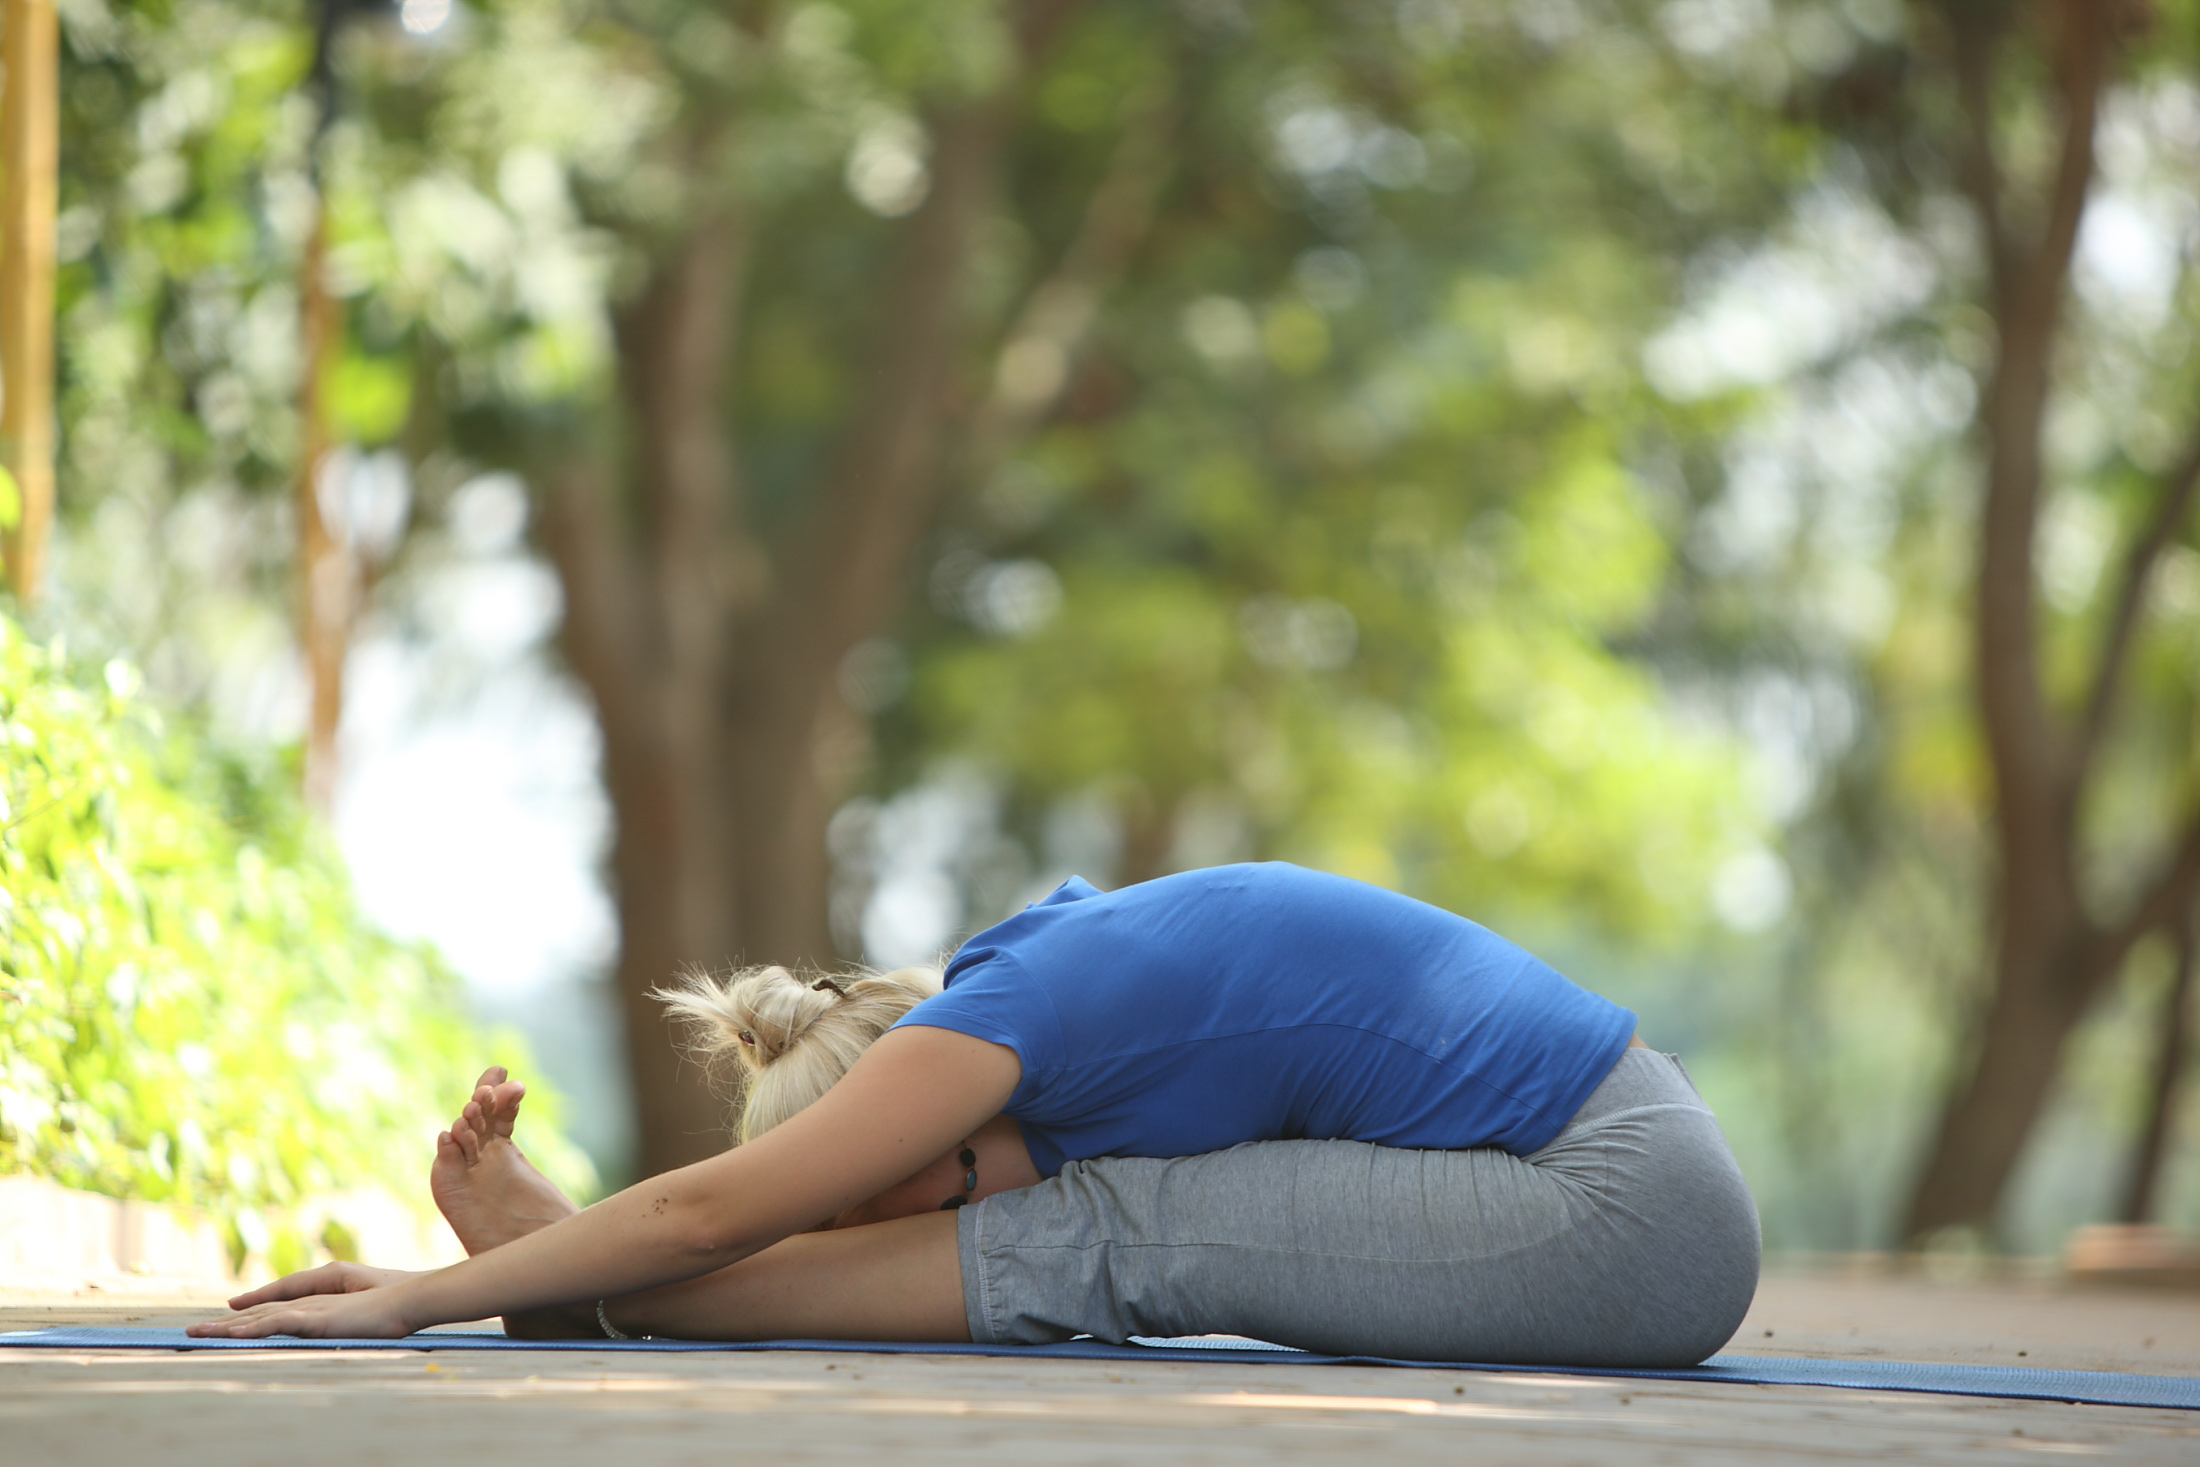 Woman on yoga mat in Seated Forward Bend Yoga Pose with trees in background